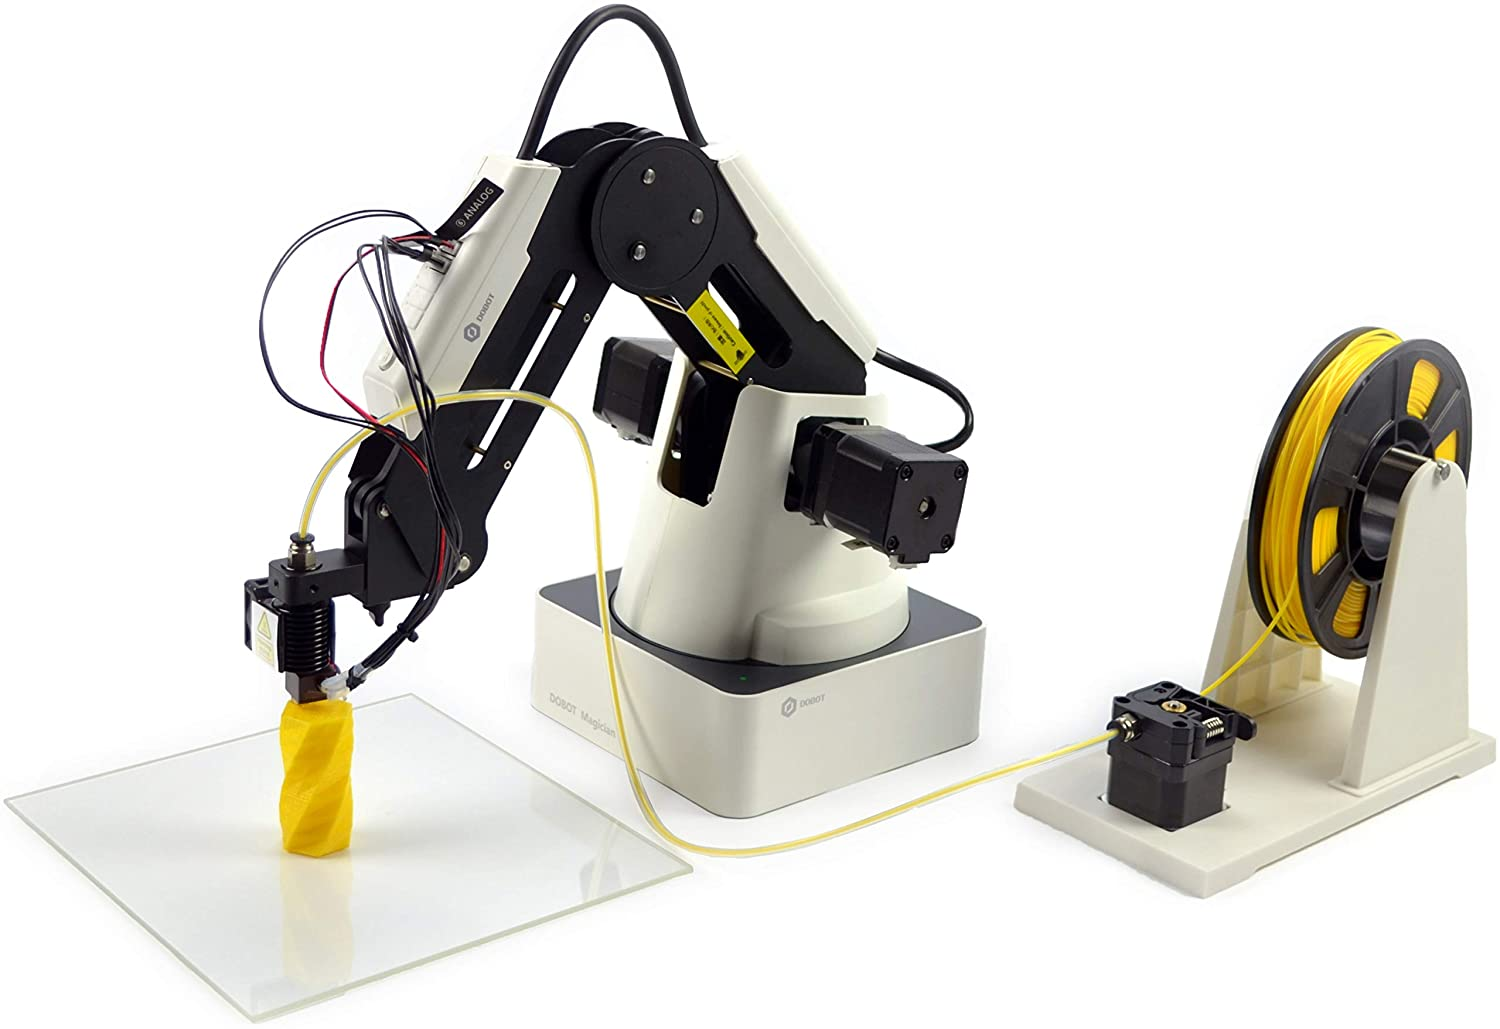 4-axis Robot Arm with 3D Printer DOBOT Magician Educational Programming Robot Gripper Heads for K12 or STEAM Education Pen Holder Suction Cap Laser Engraver Educational Version